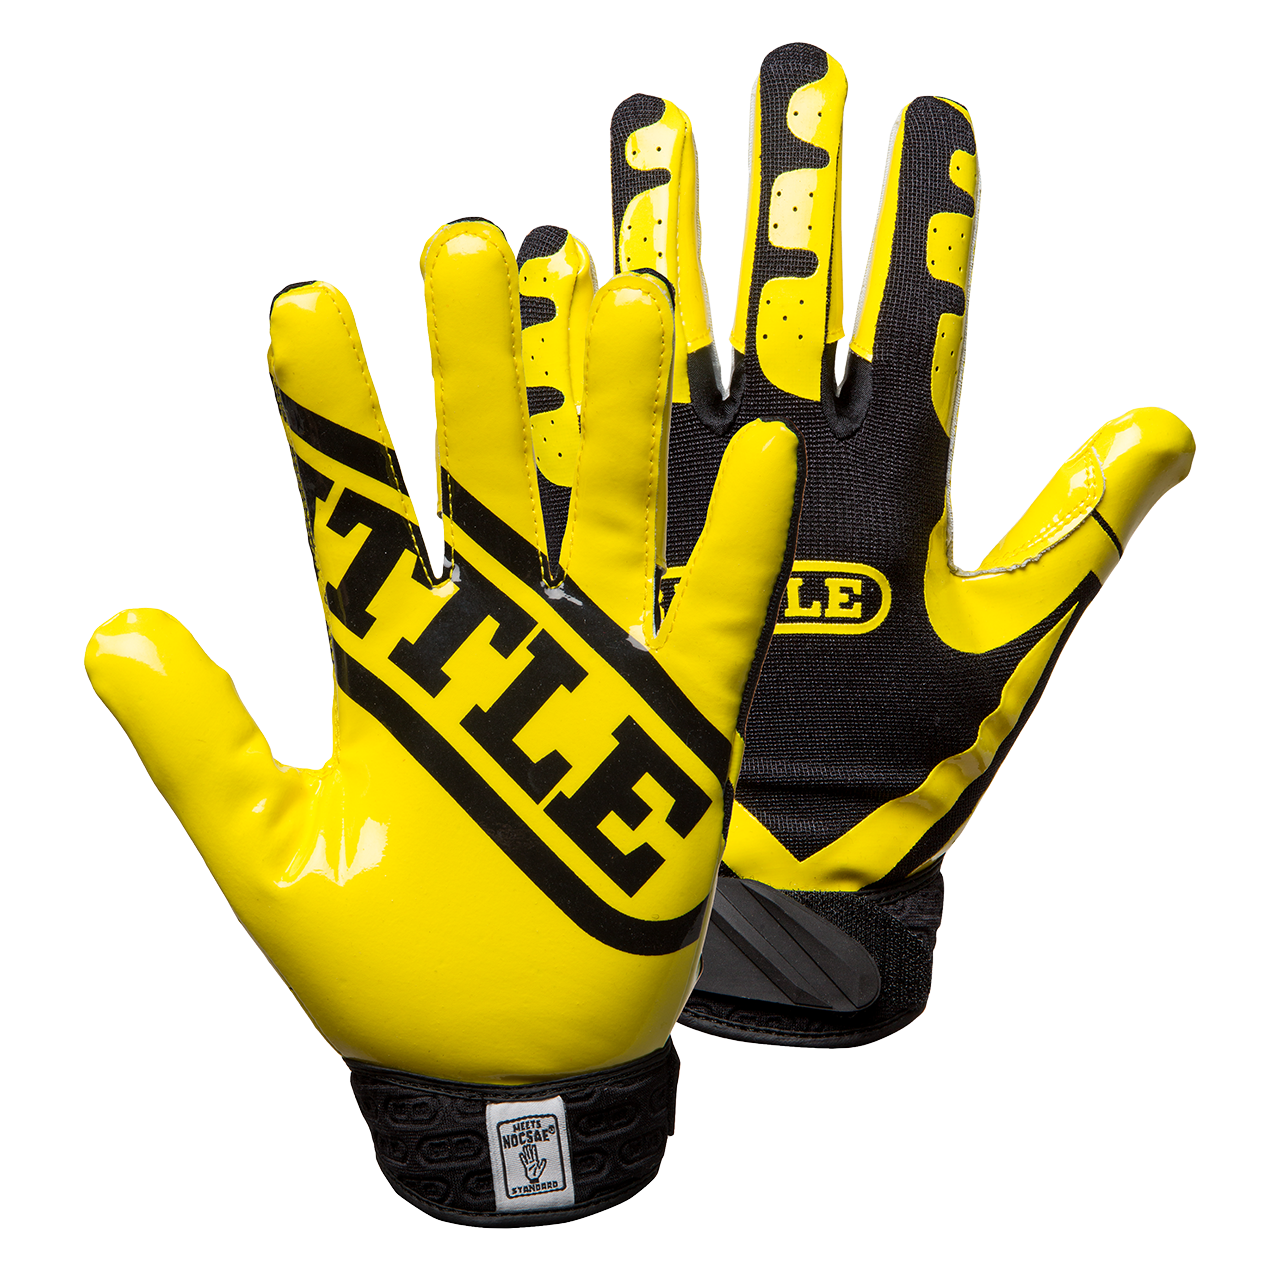 Football gloves clipart png transparent download Hermes™Presented by on emaze png transparent download